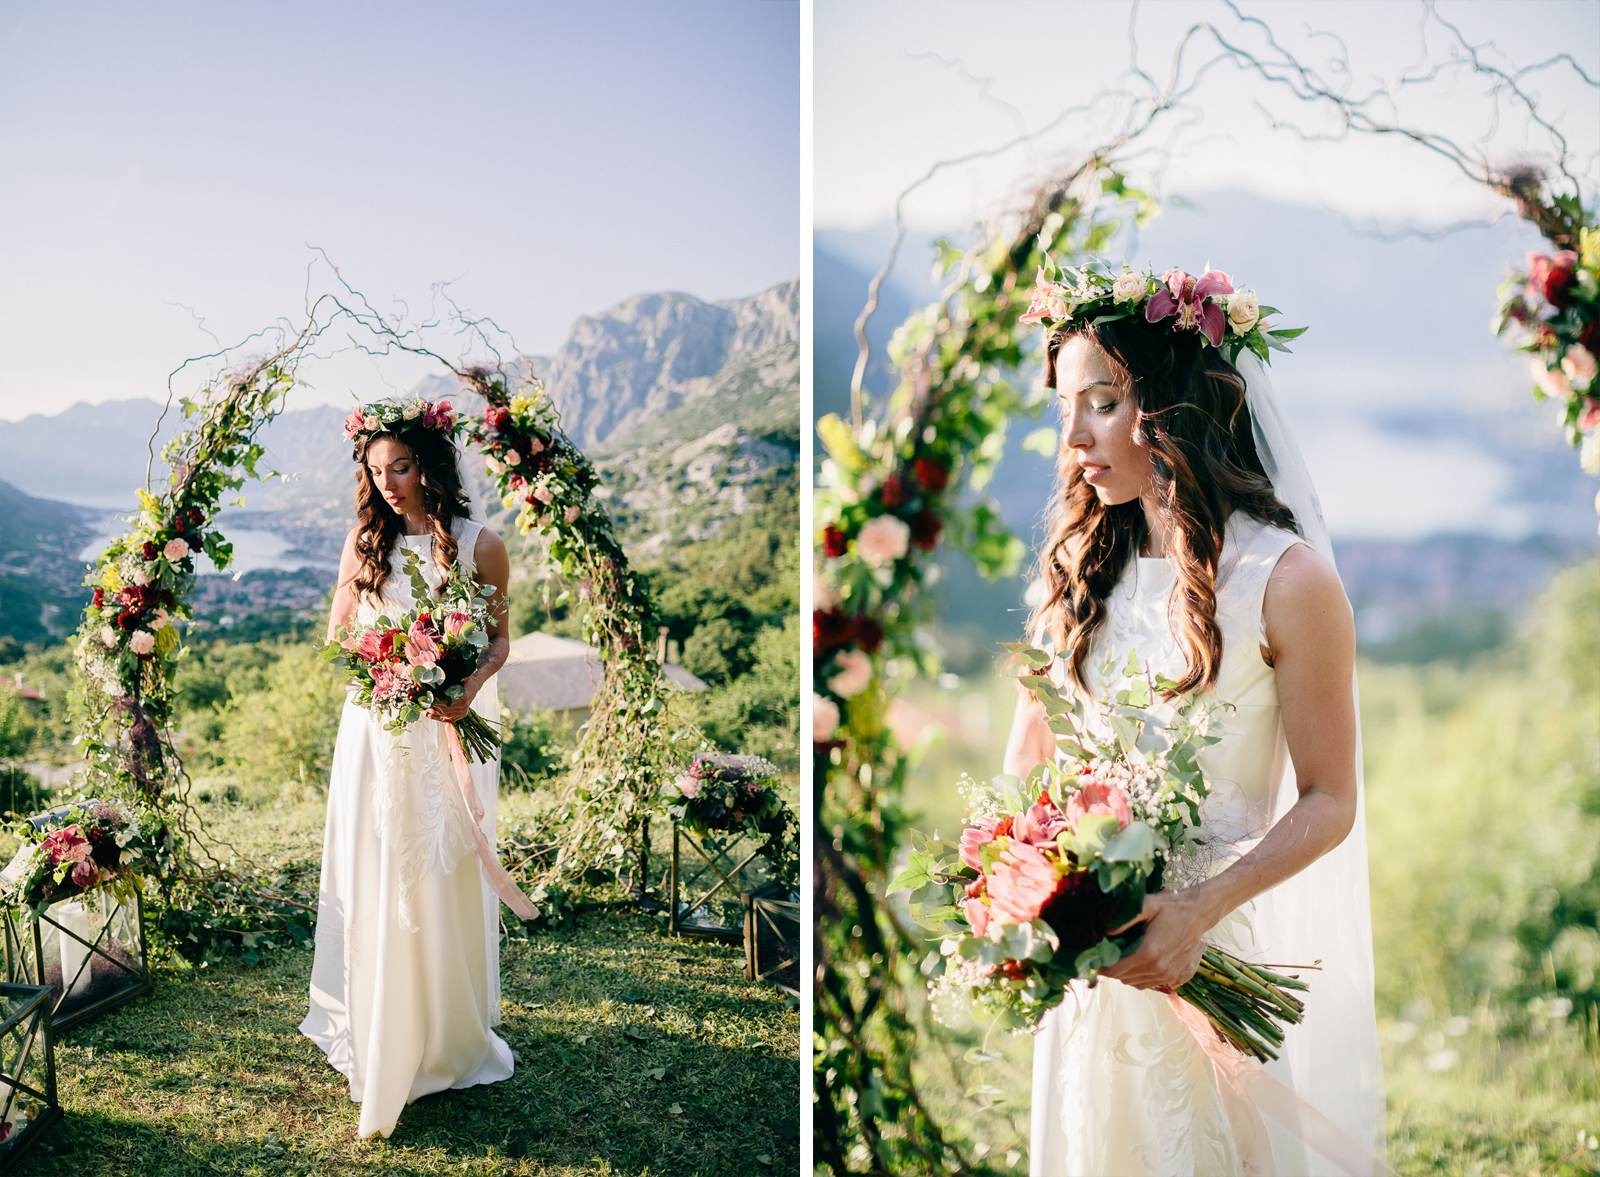 elopement-wedding-in-kotor-montenegro-064